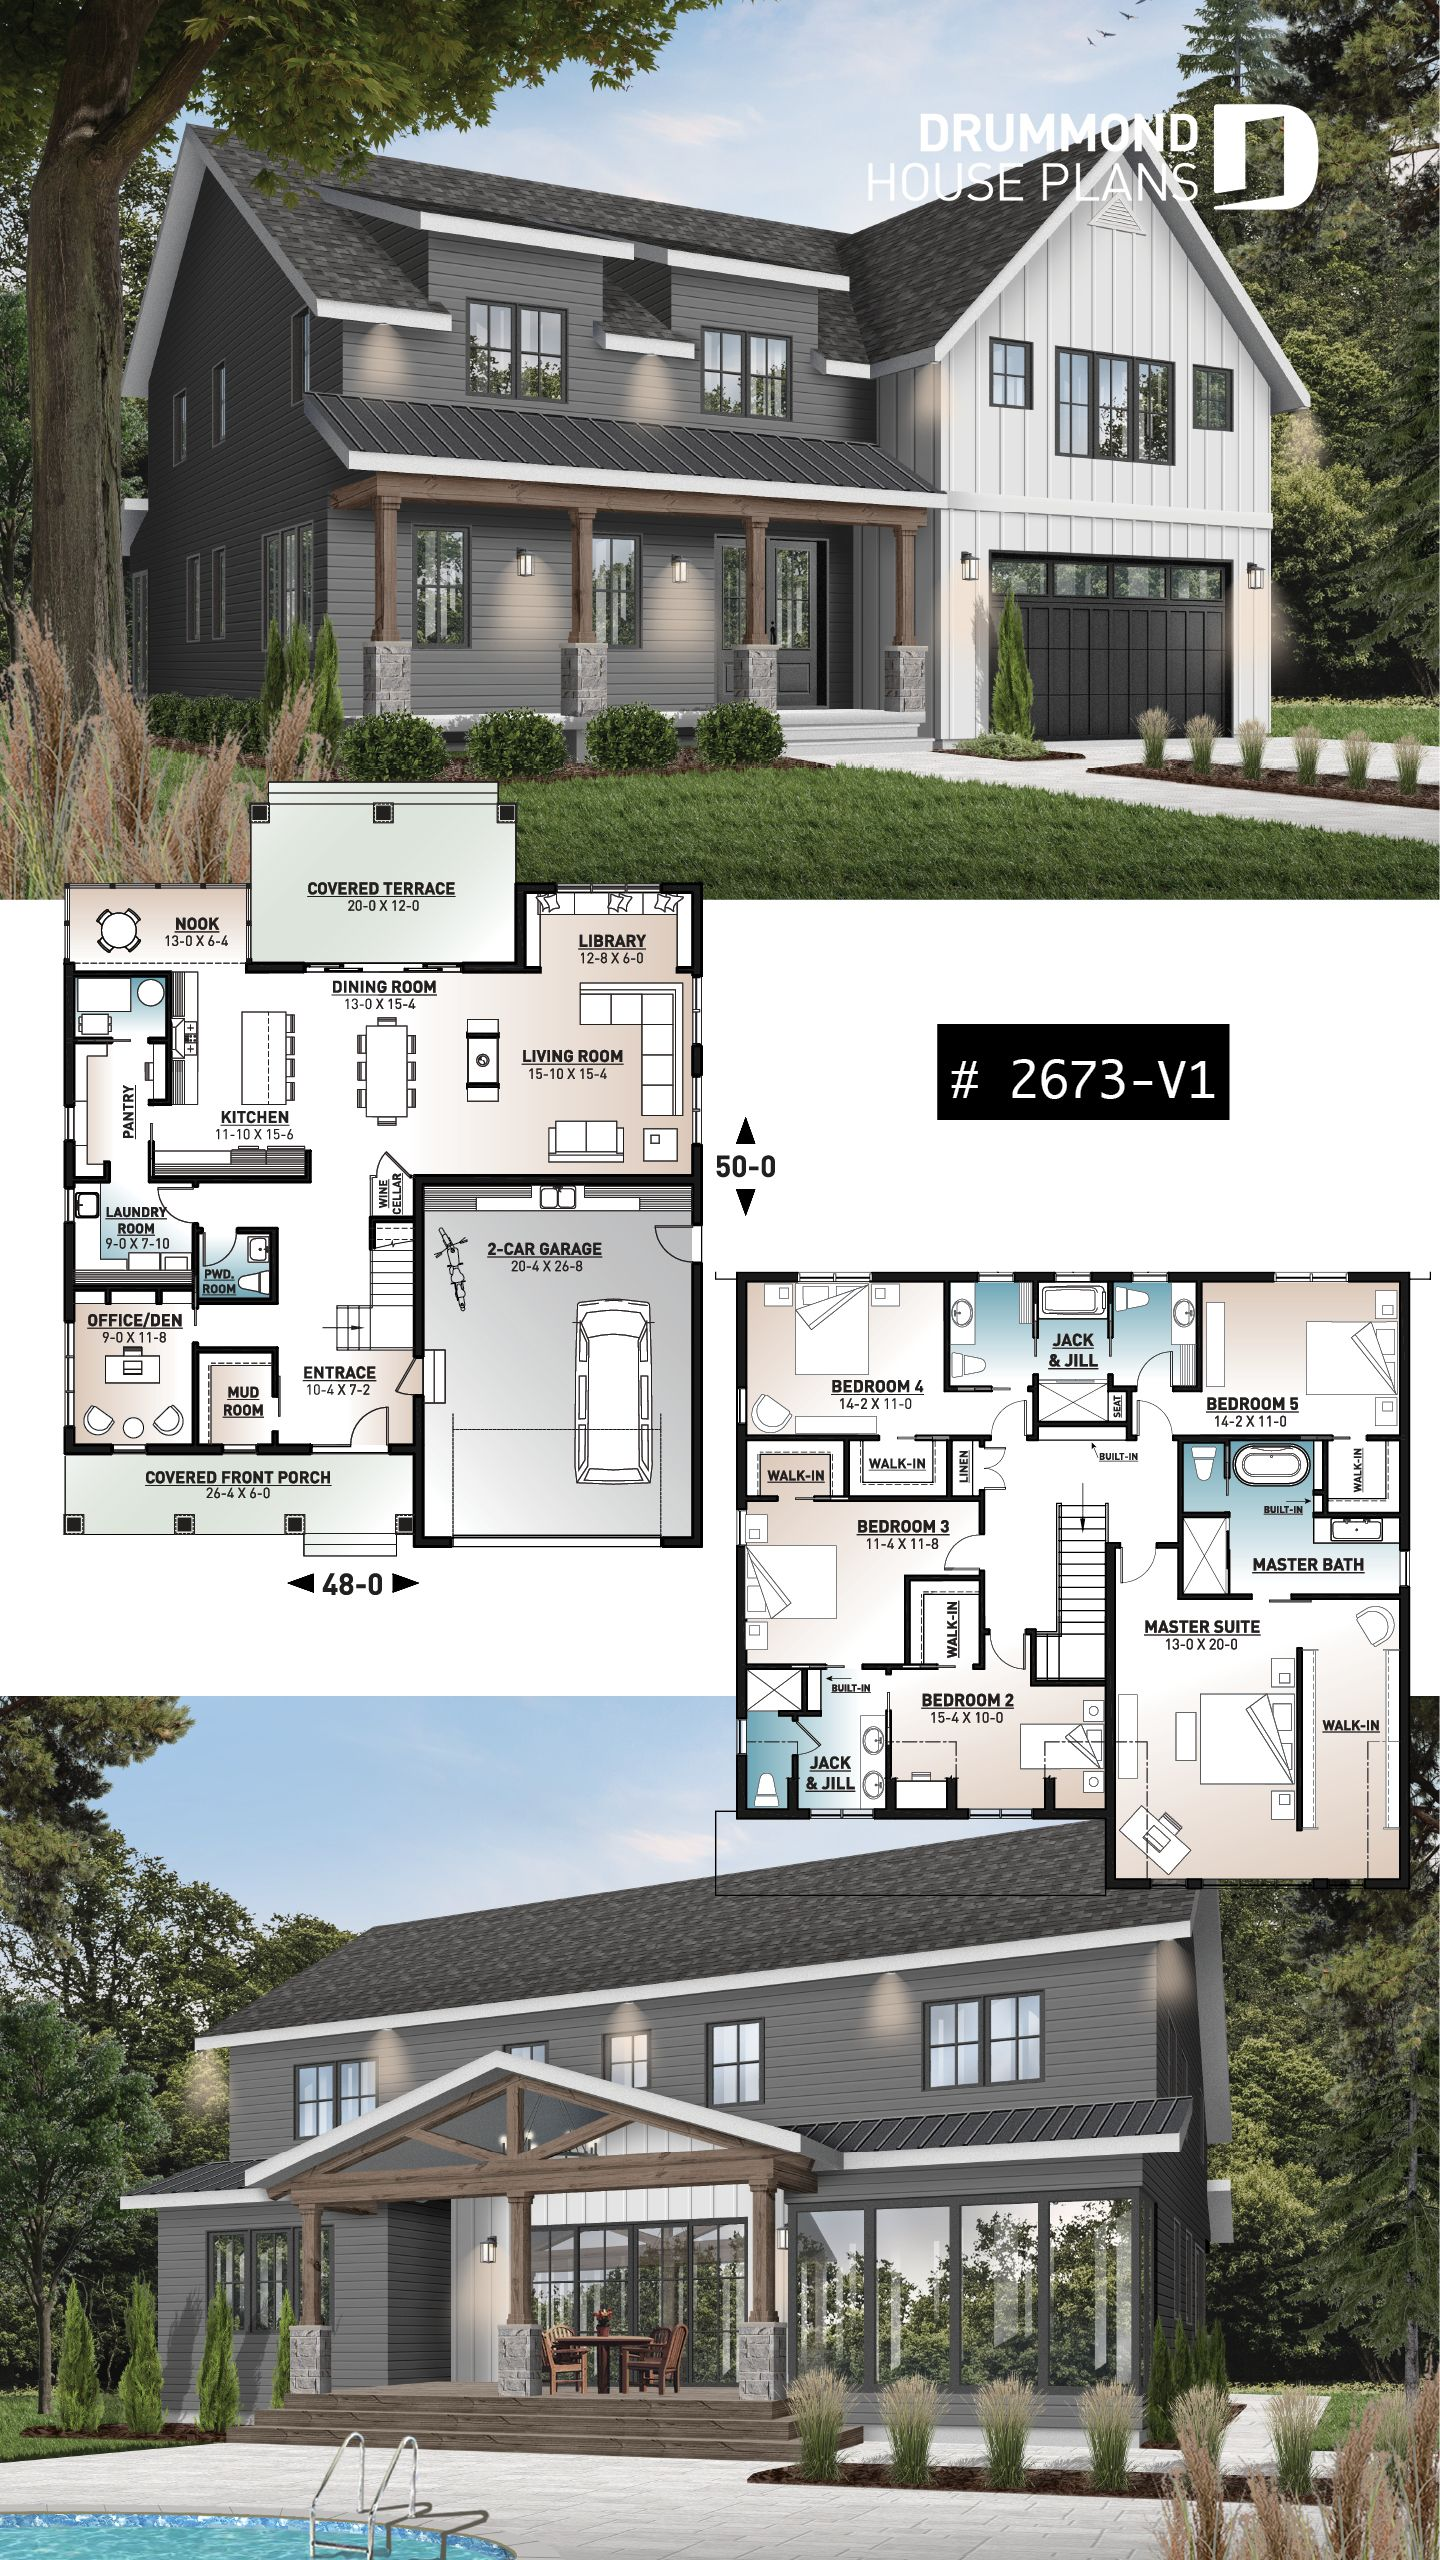 Modernes Bauernhaus 5 Schlafzimmer mit Garage   – Modern Farmhouse and Farmhouse Home Plans